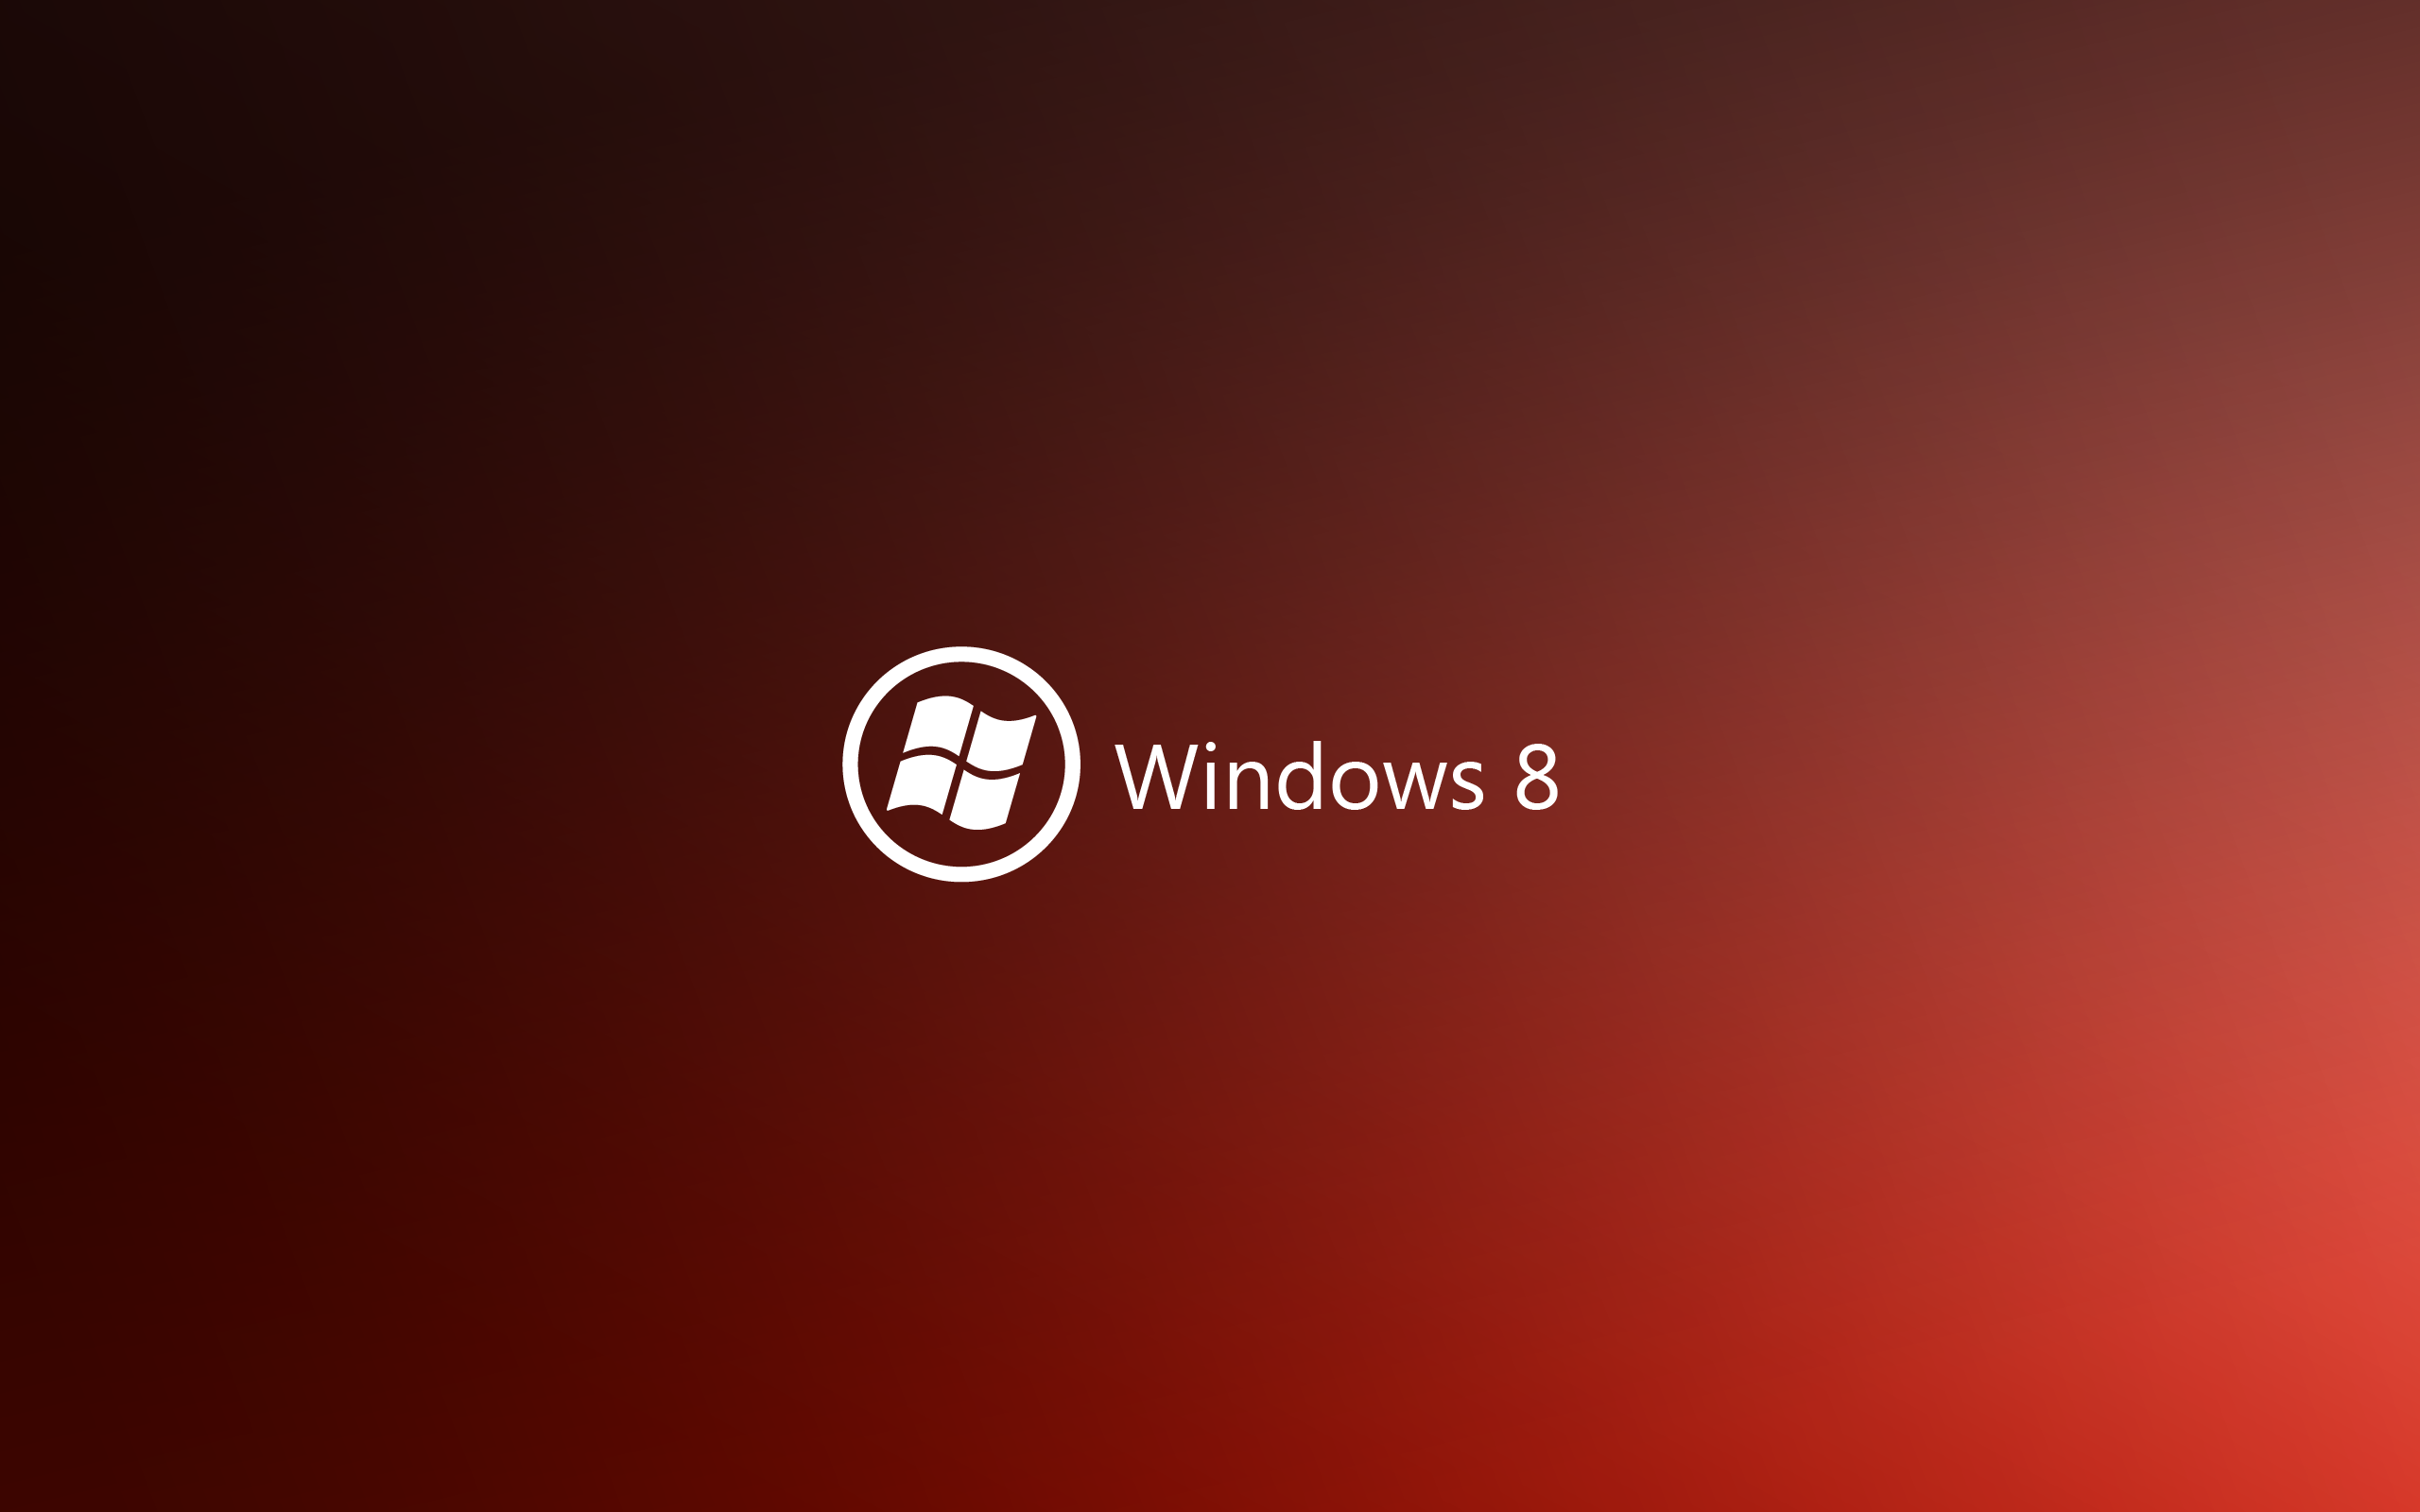 Windows Wallpaper Black Screen With X Android Wallpapers Red And Black Desktop 2560x1600 Wallpaper Teahub Io